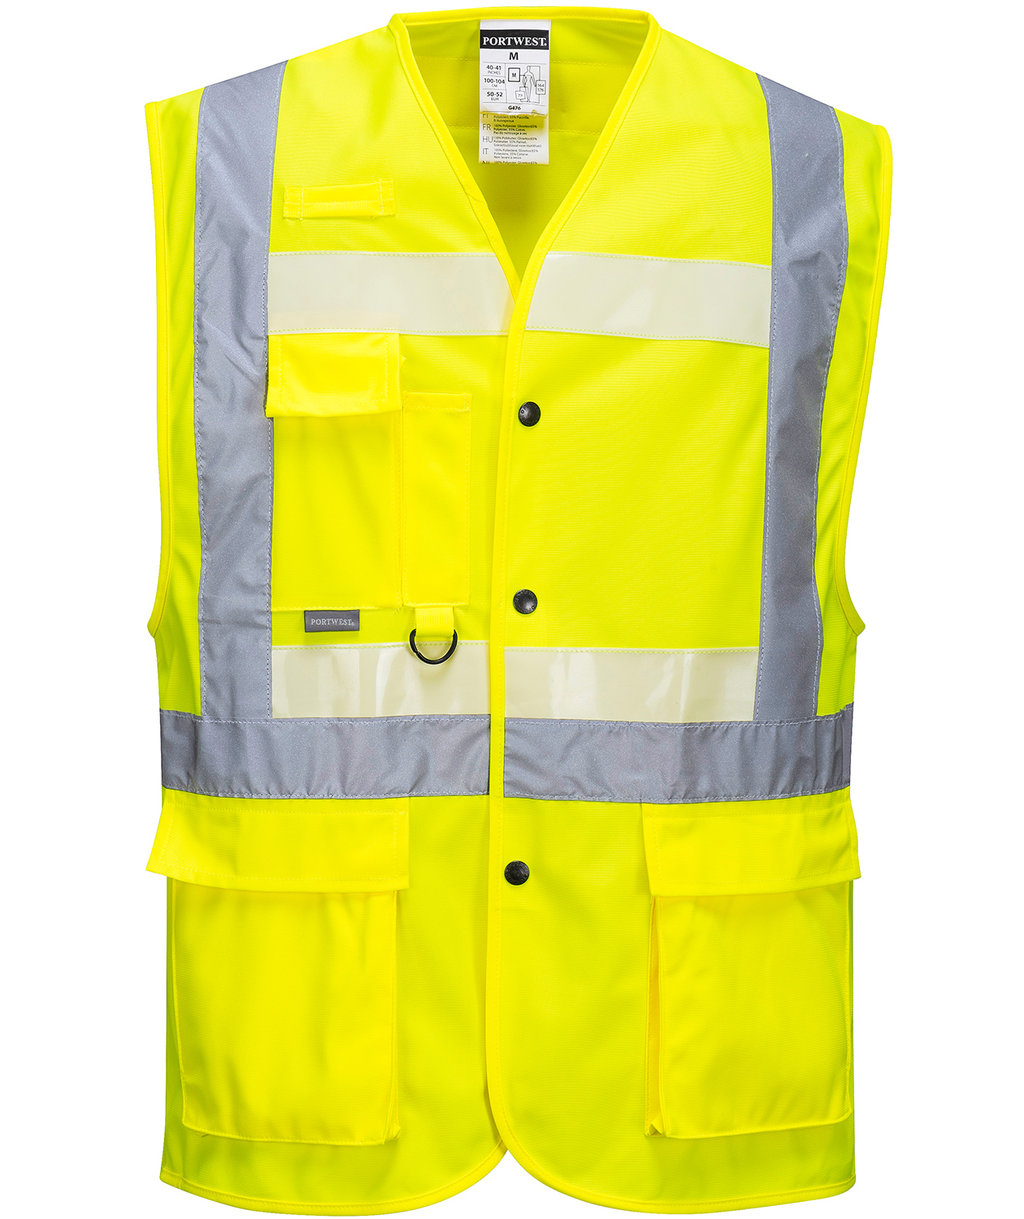 Portwest Glowtex Executive vest, Hi-Vis Gul